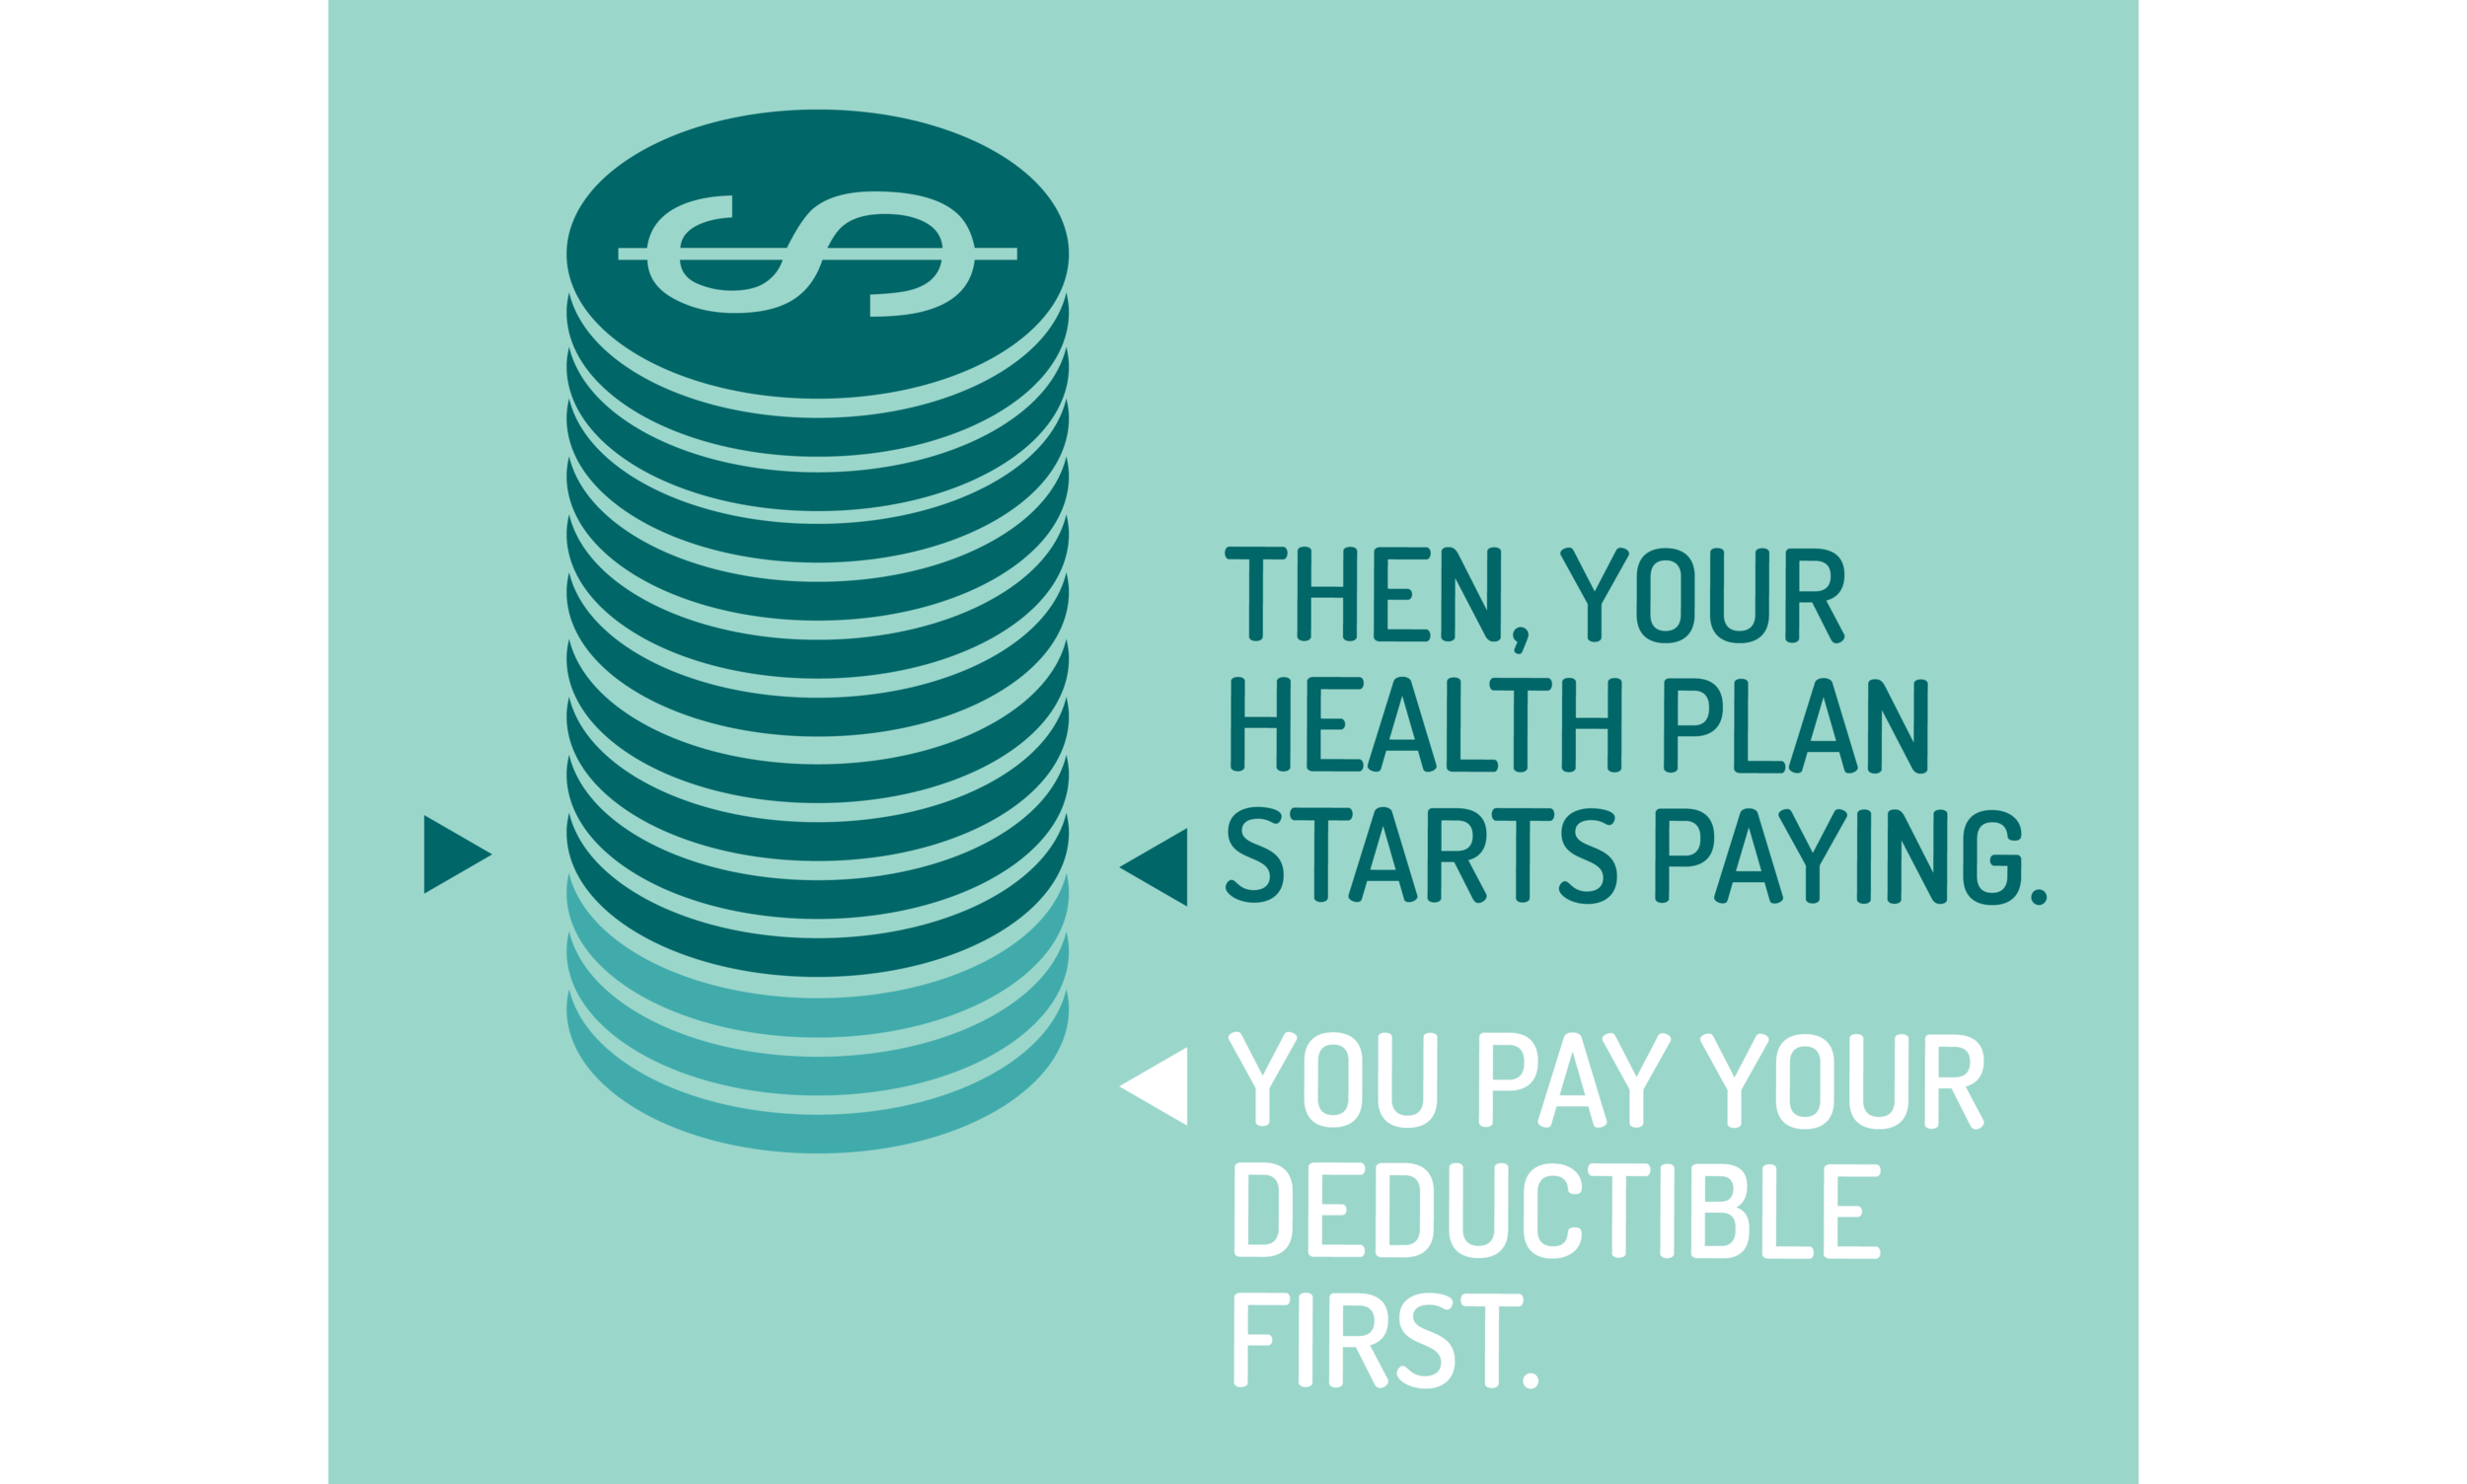 graphic symbolizing when your health plan starts paying